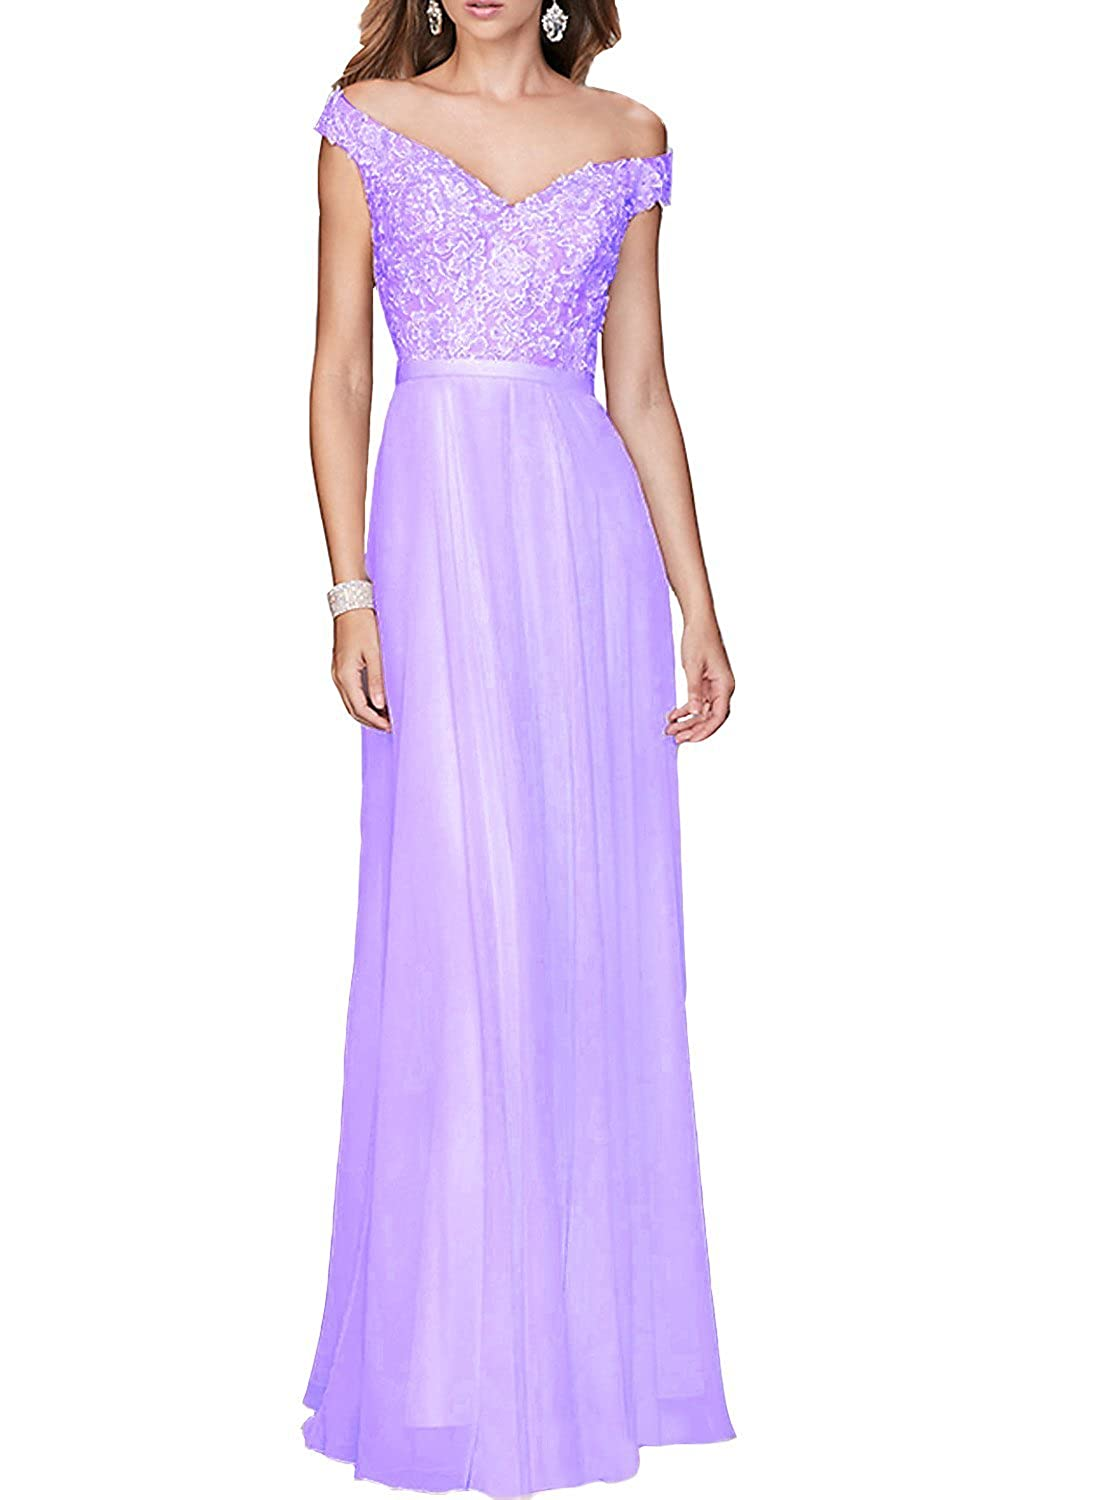 Now&Forever Women's Off the Shoulder Lace Appliques Chiffon Long Formal Evening Gown for Wedding and Women Prom Dress for Girls NF116